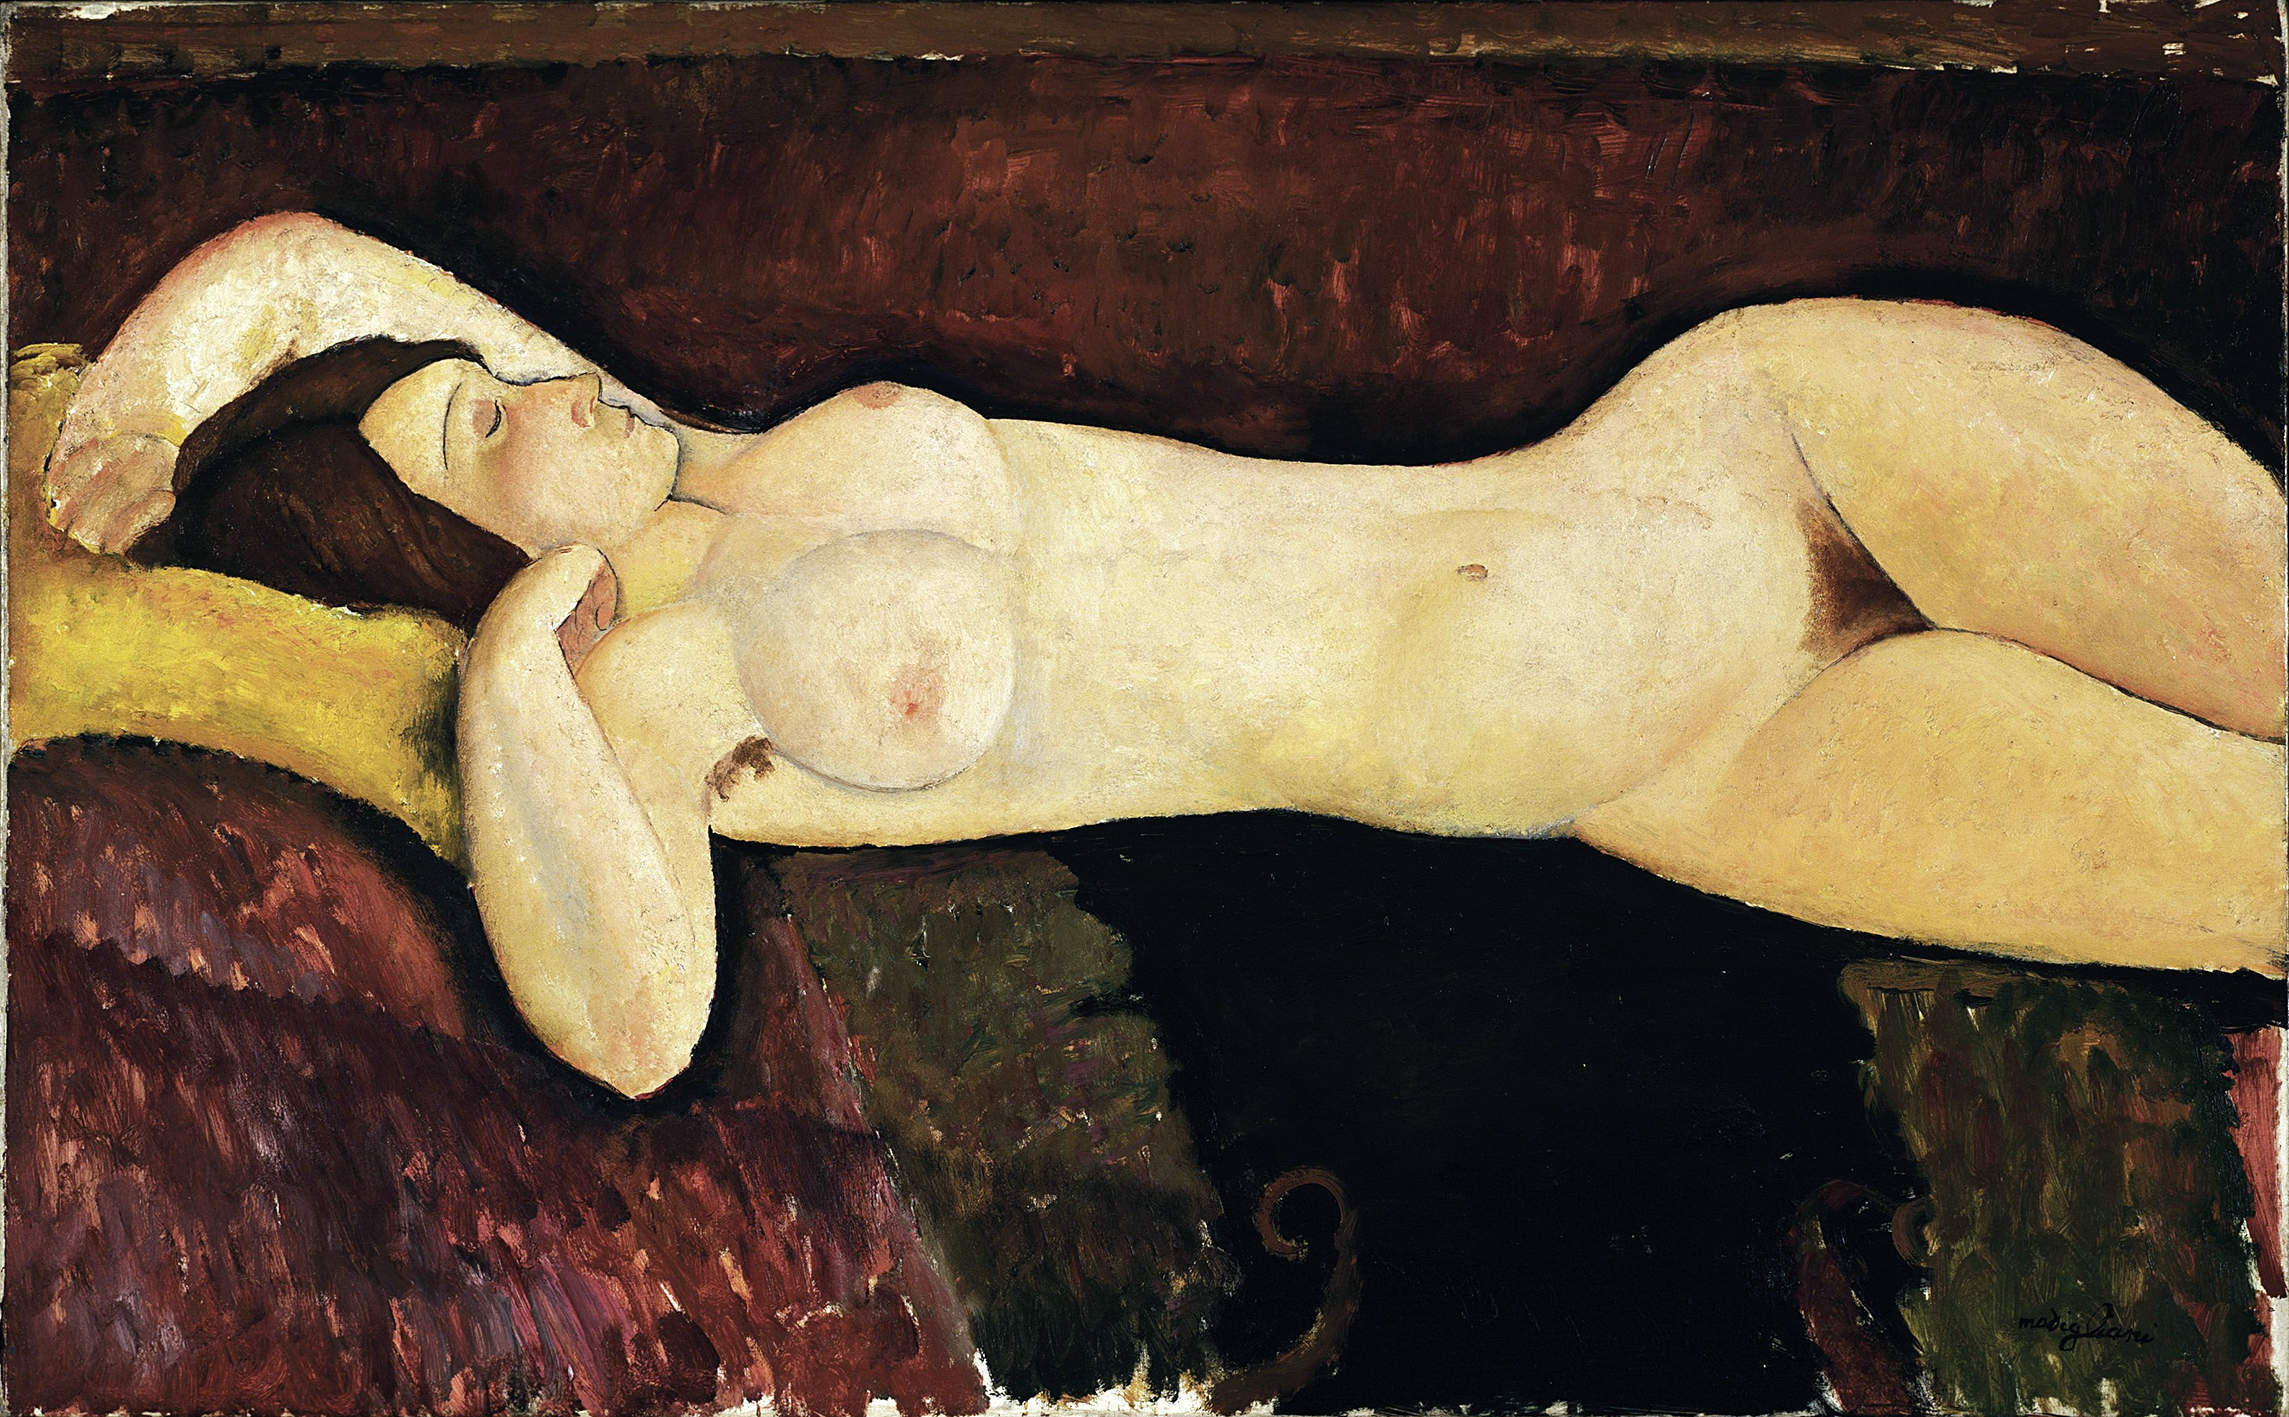 Amedeo Modigliani sought to portray instinctive humanity – but couldn't outrun his own instincts